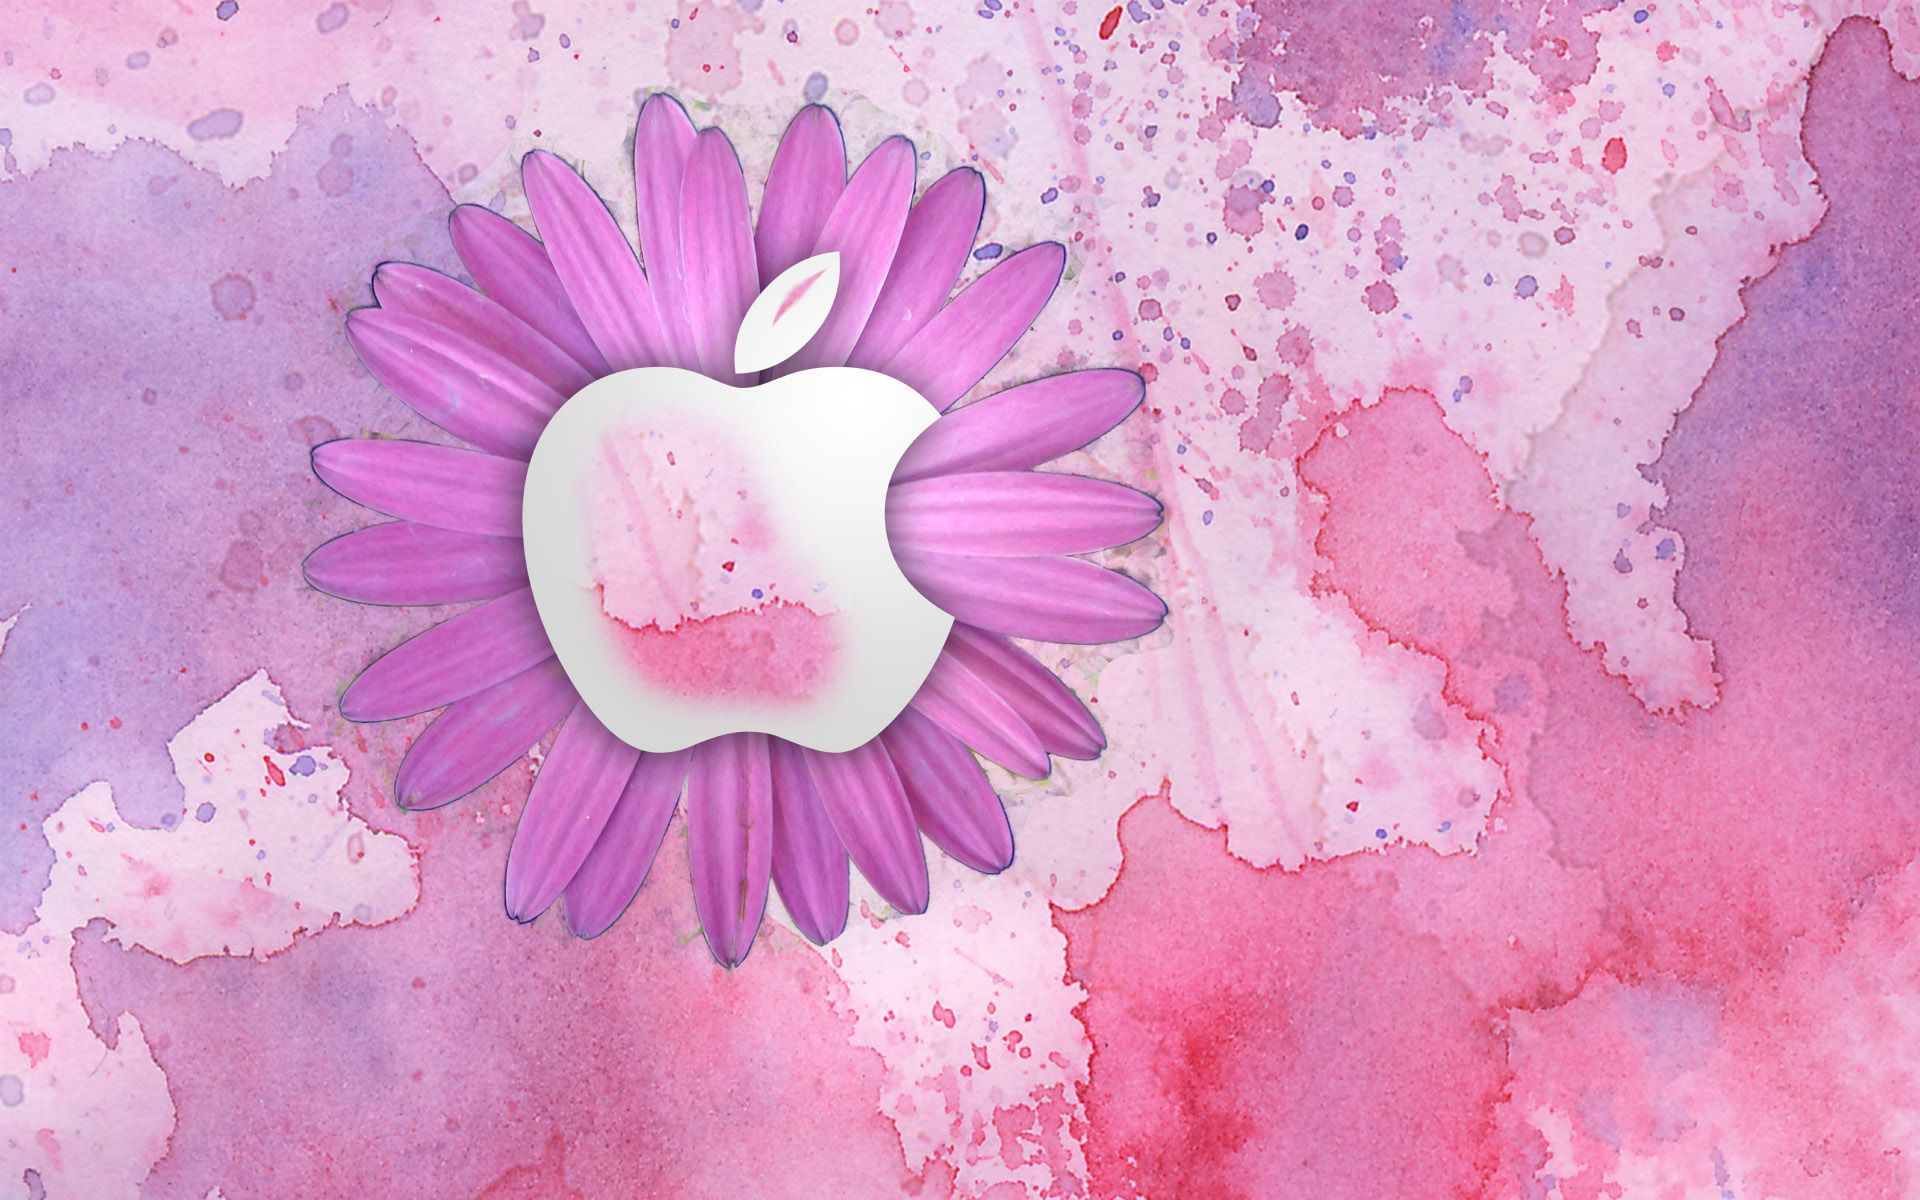 Girly Mac Desktop Backgrounds Images And Wallpapers All Free